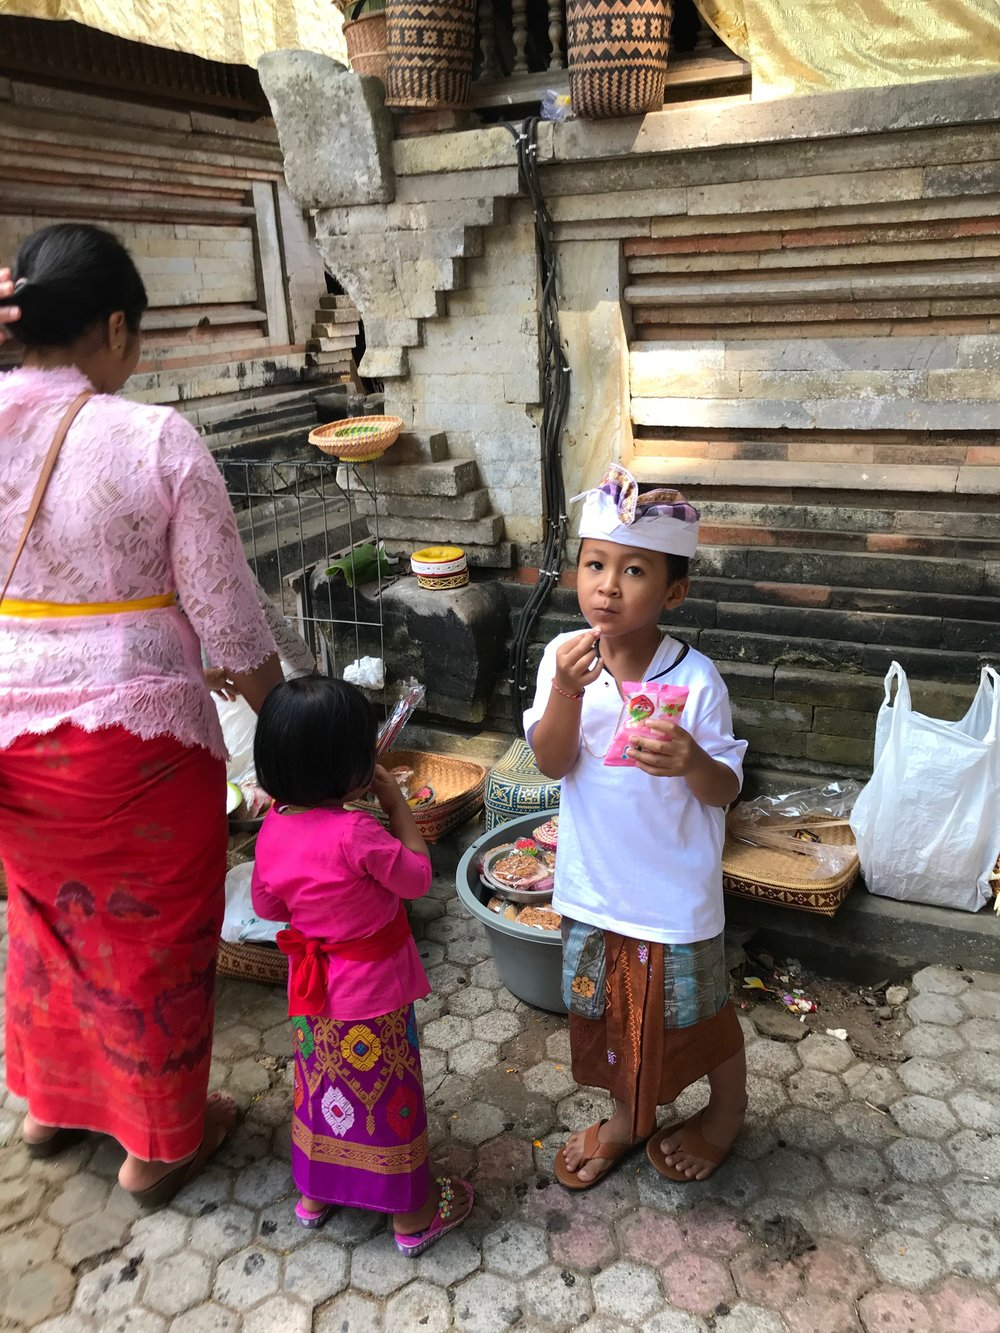 Children probably spend hours at the temple during the festival and snack throughout the day